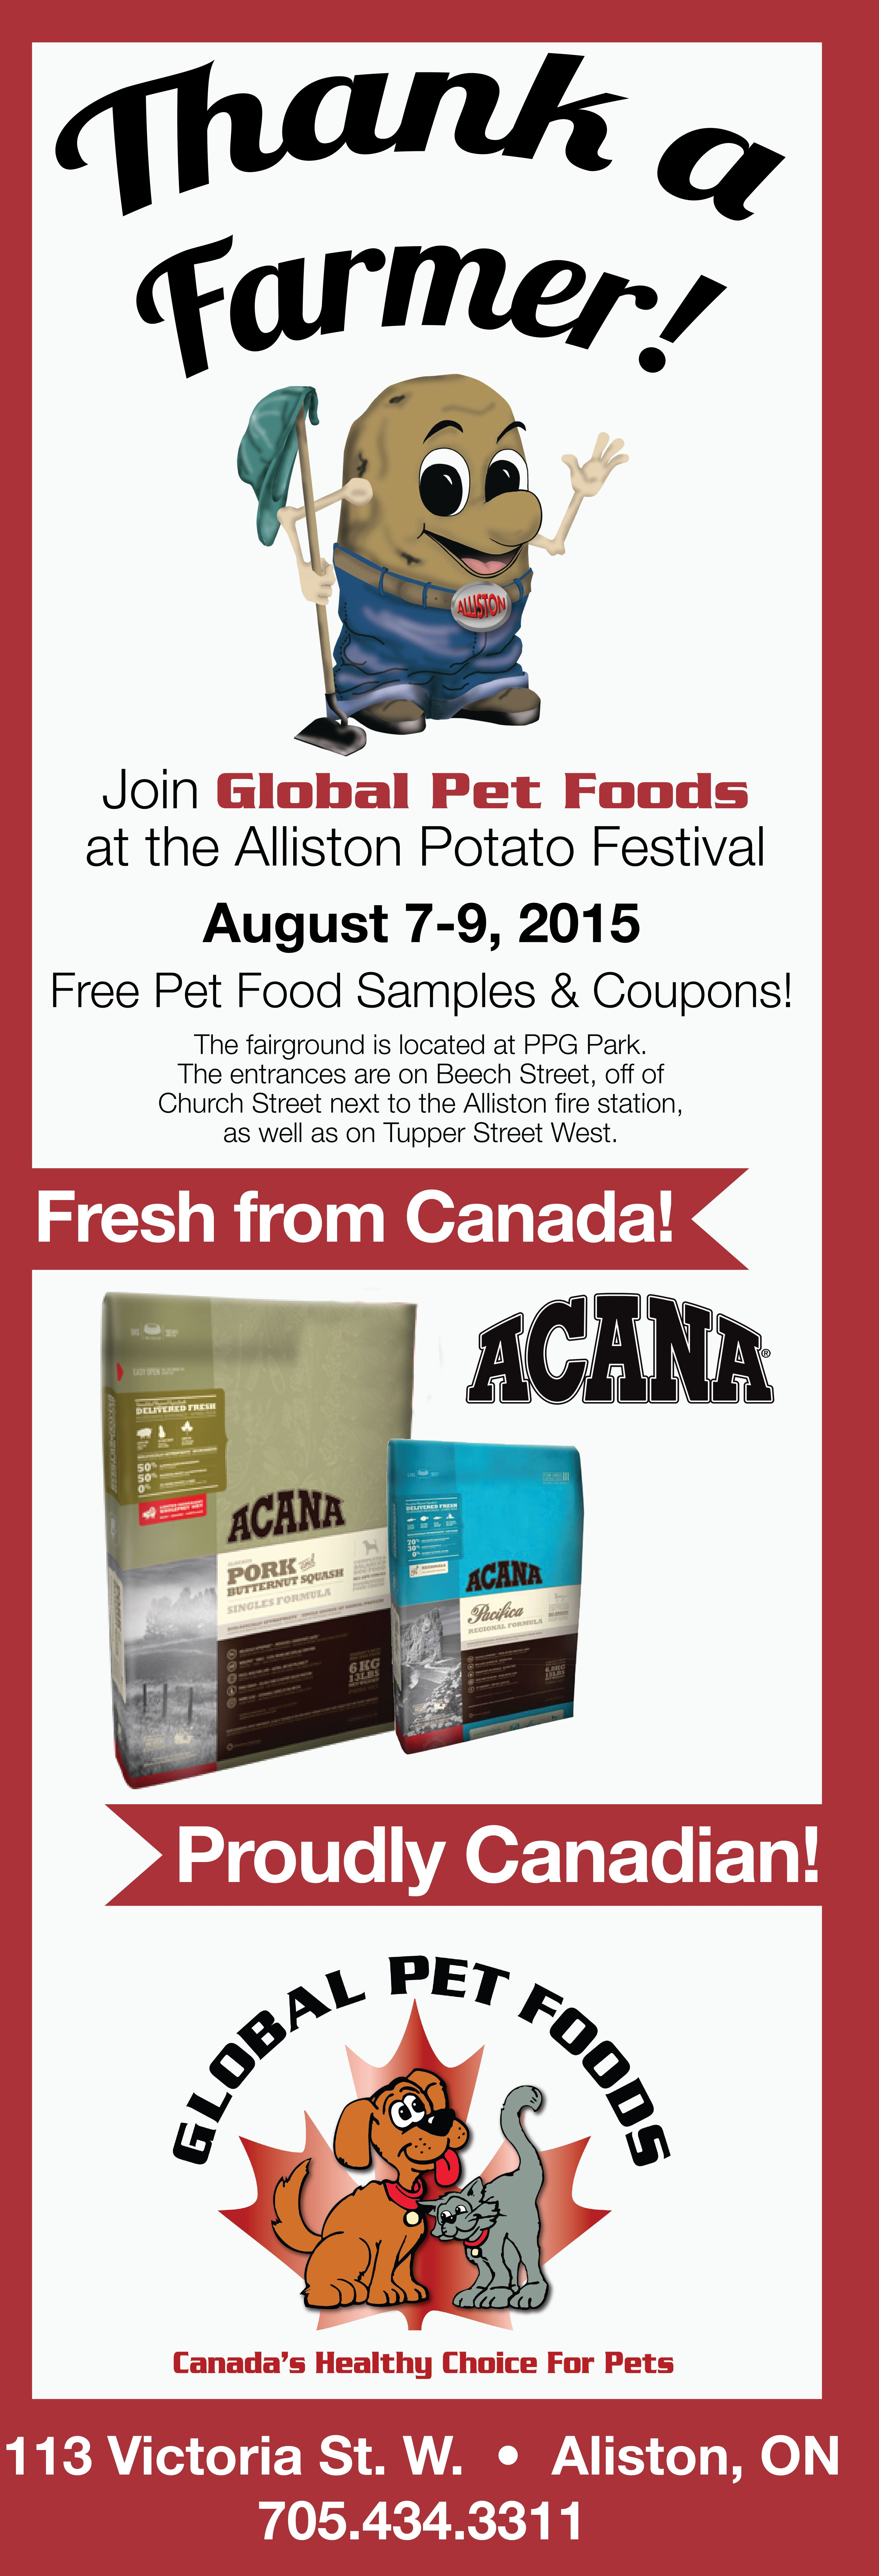 Join Global Pet Foods at the Alliston Potato Festival from